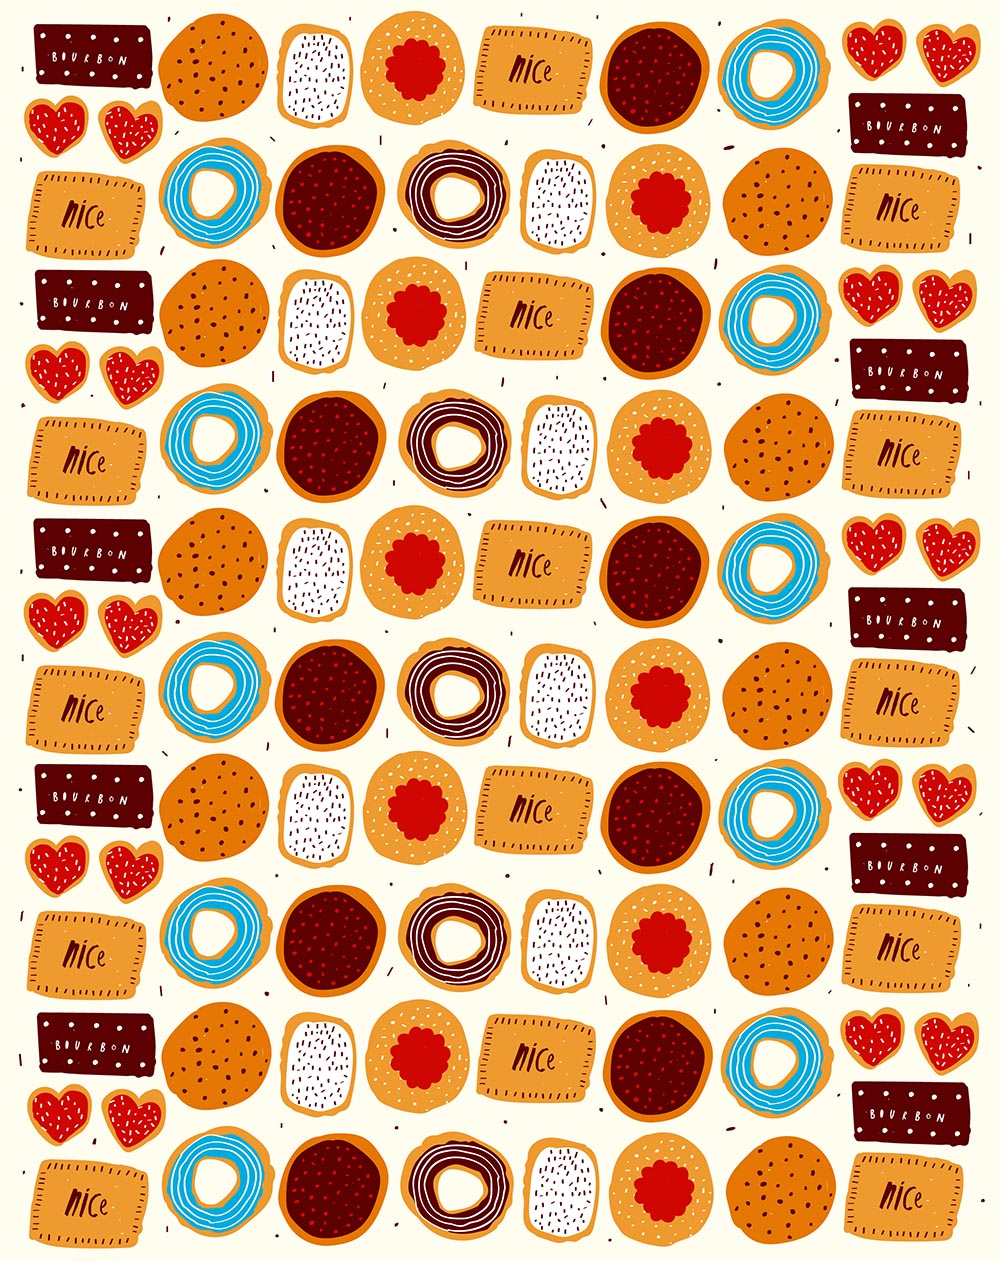 biscuits pattern_Nikki Miles-01 copy.jpg